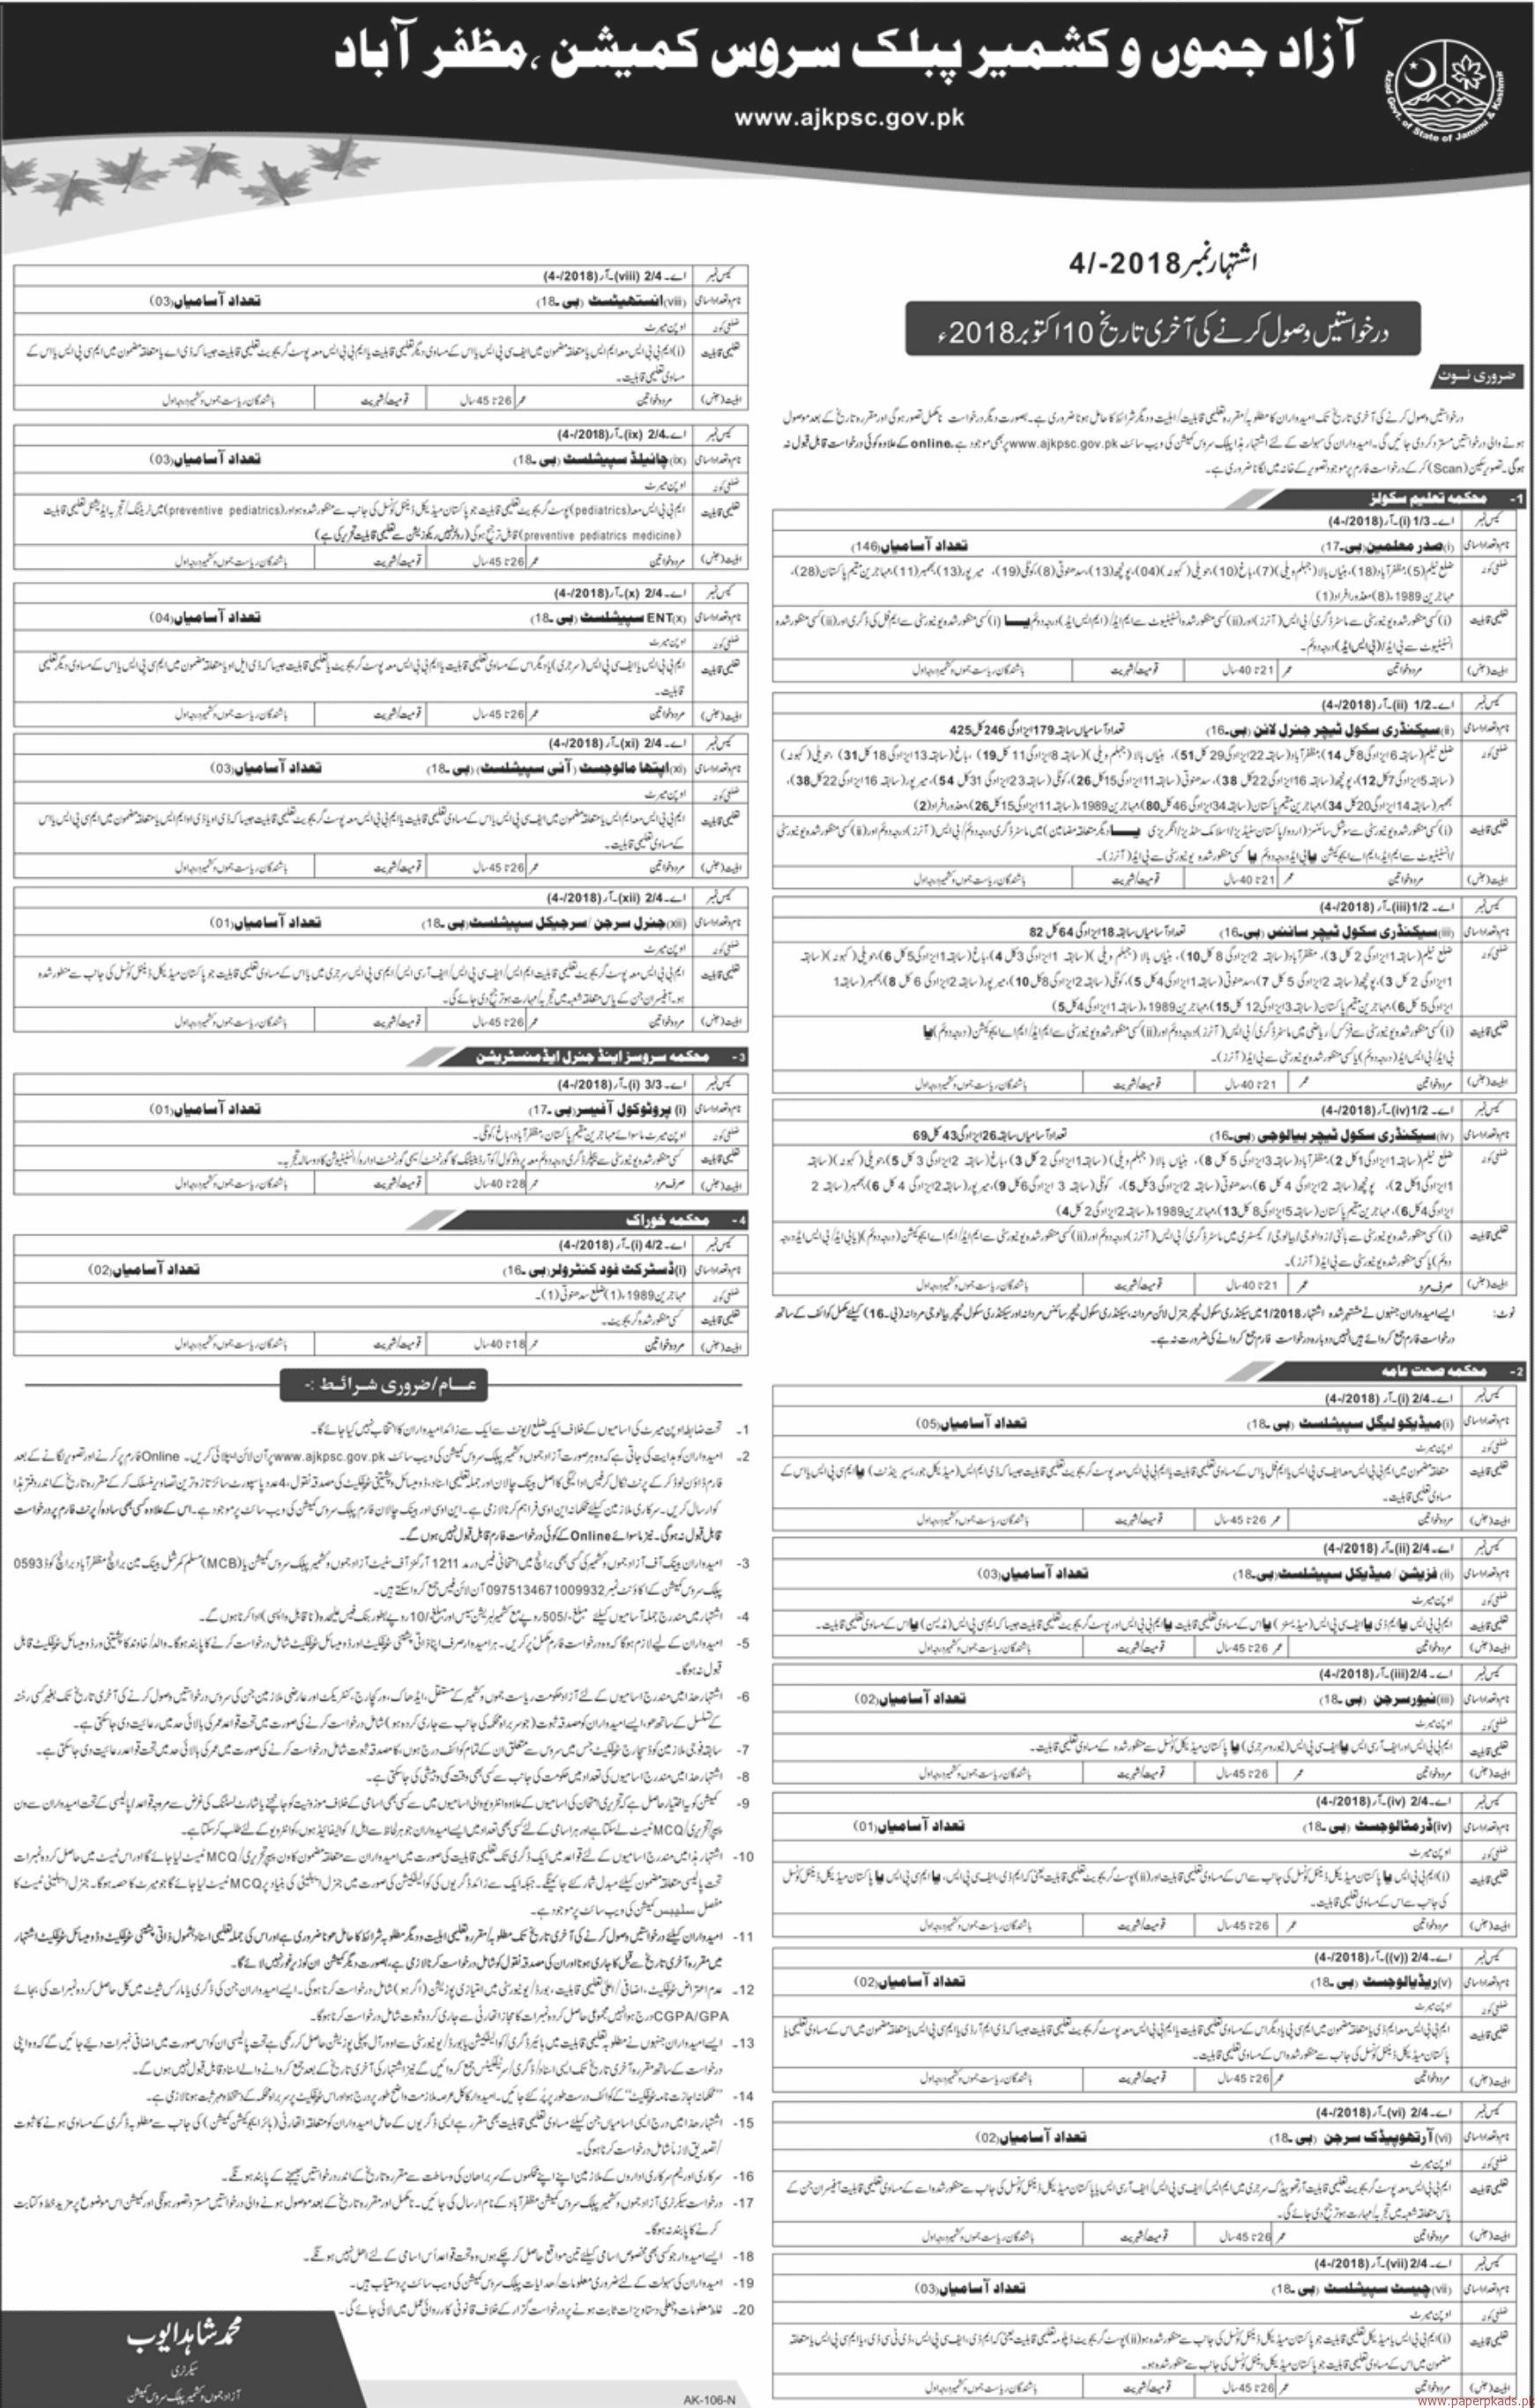 Azad Jammu & Kashmir Public Service Commission Jobs Advertisement No 04-2018 latest Jobs